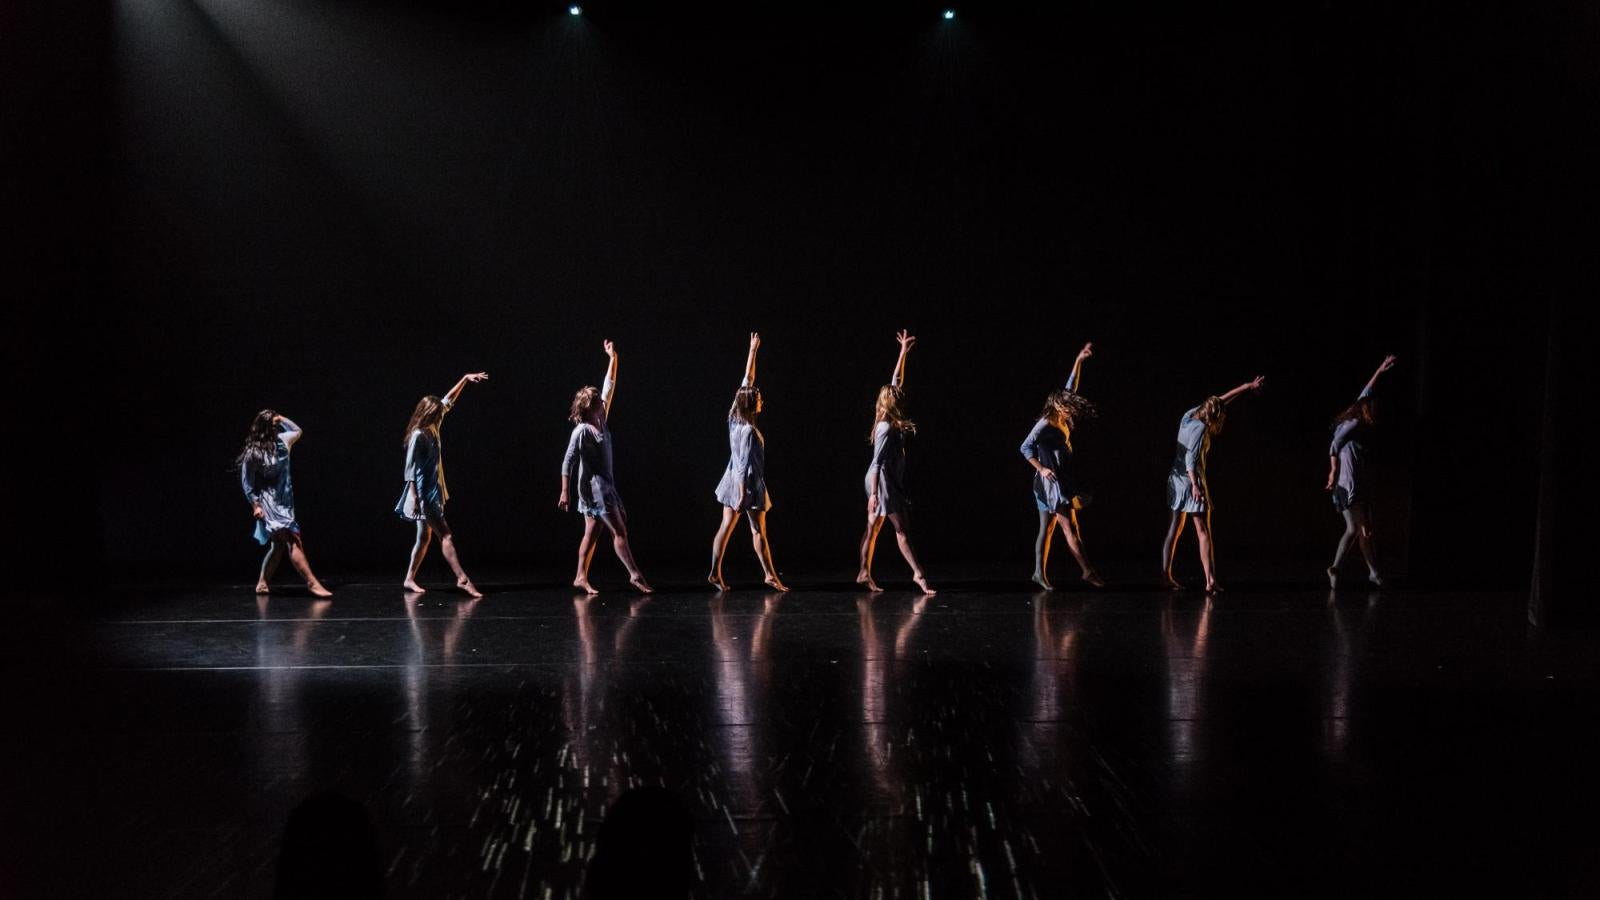 Eight dancers in a line on stage